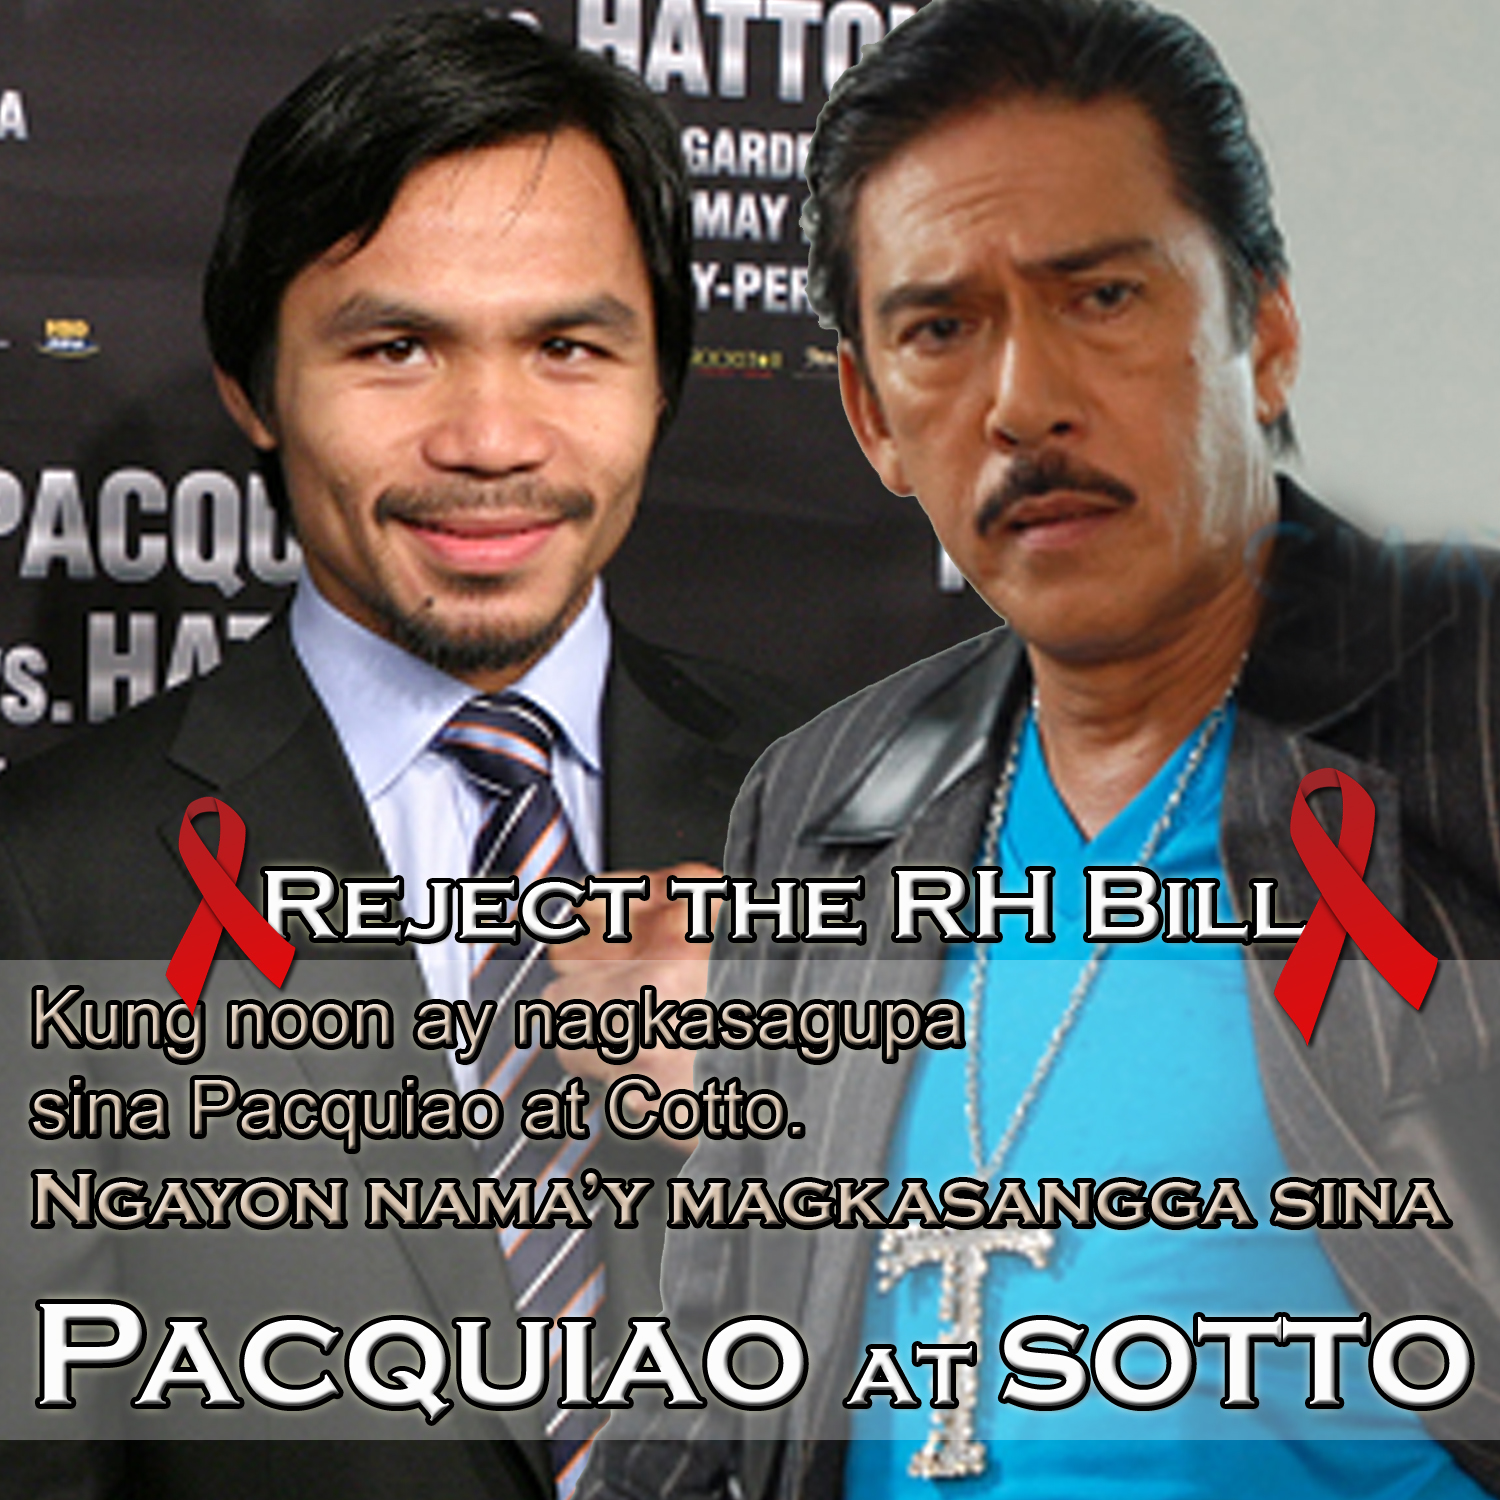 objective of rh bill Filipinos are clamoring for the passage of the reproductive health care bill (rh bill) into law  'reasons why we need the rh law'  accurate and objective .